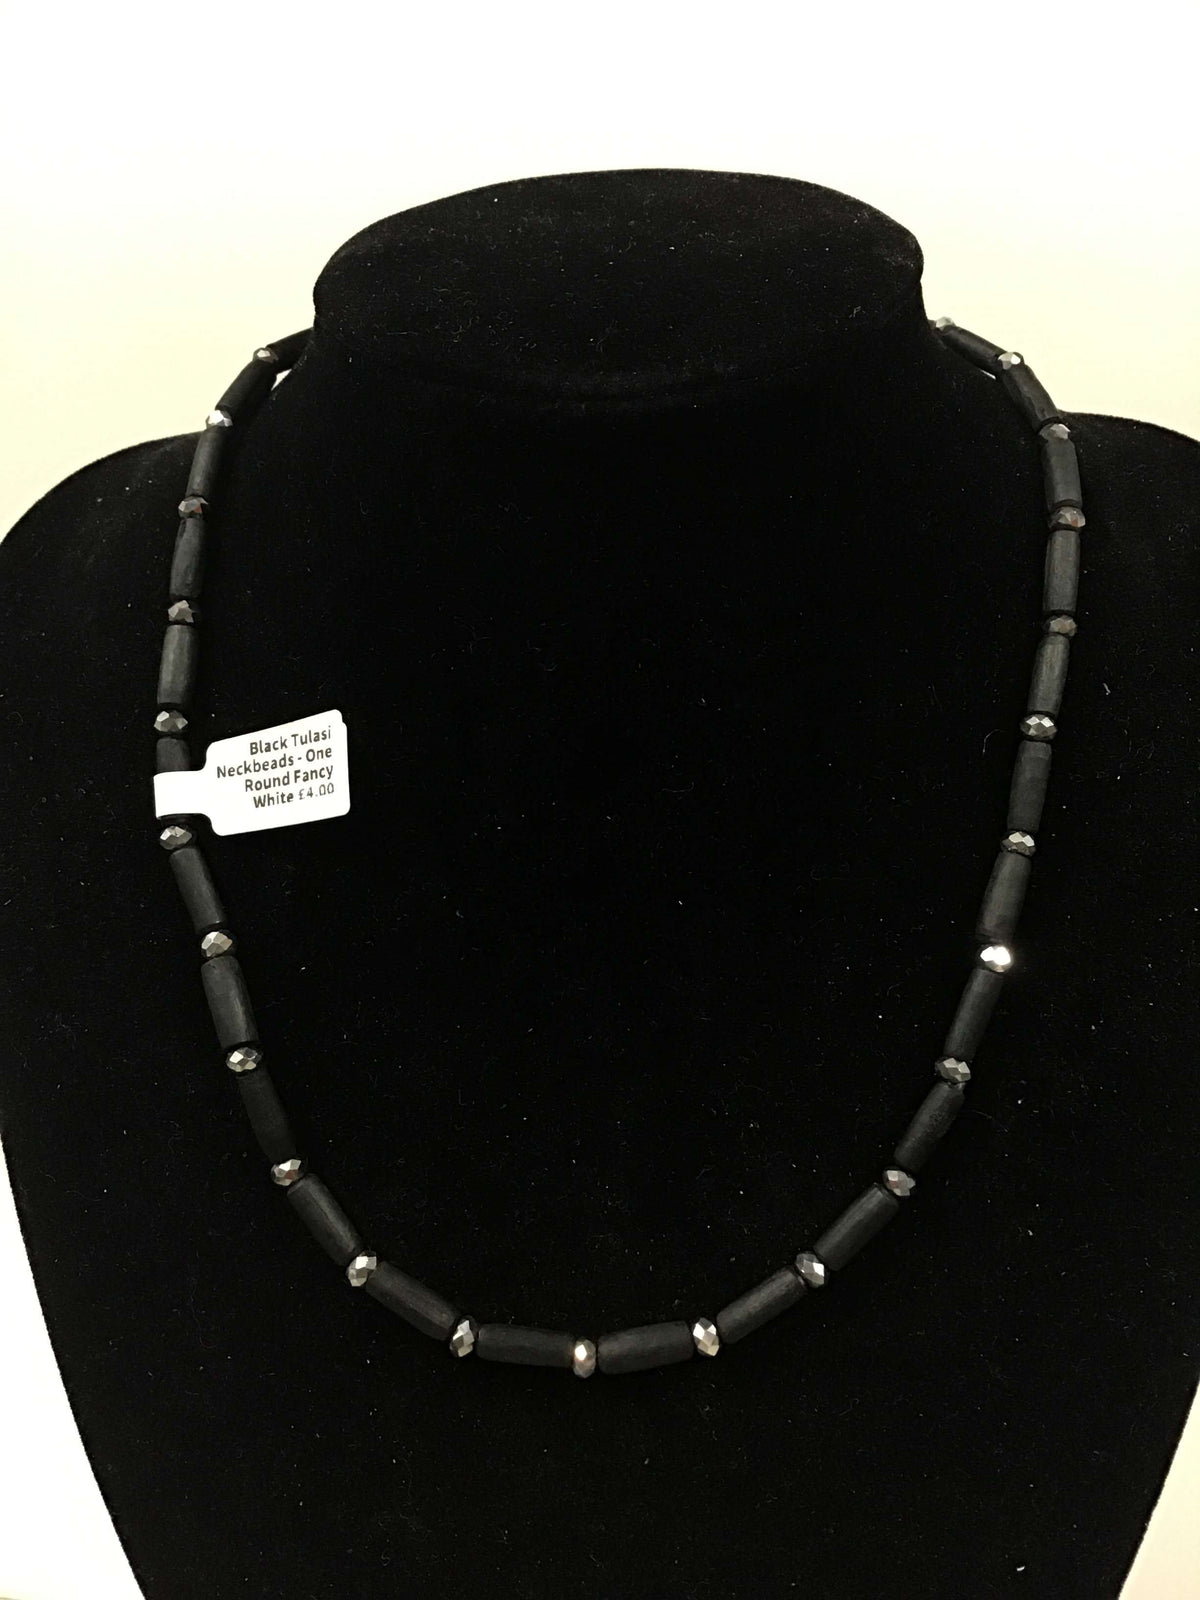 Black Tulasi Neckbeads - One Round Fancy